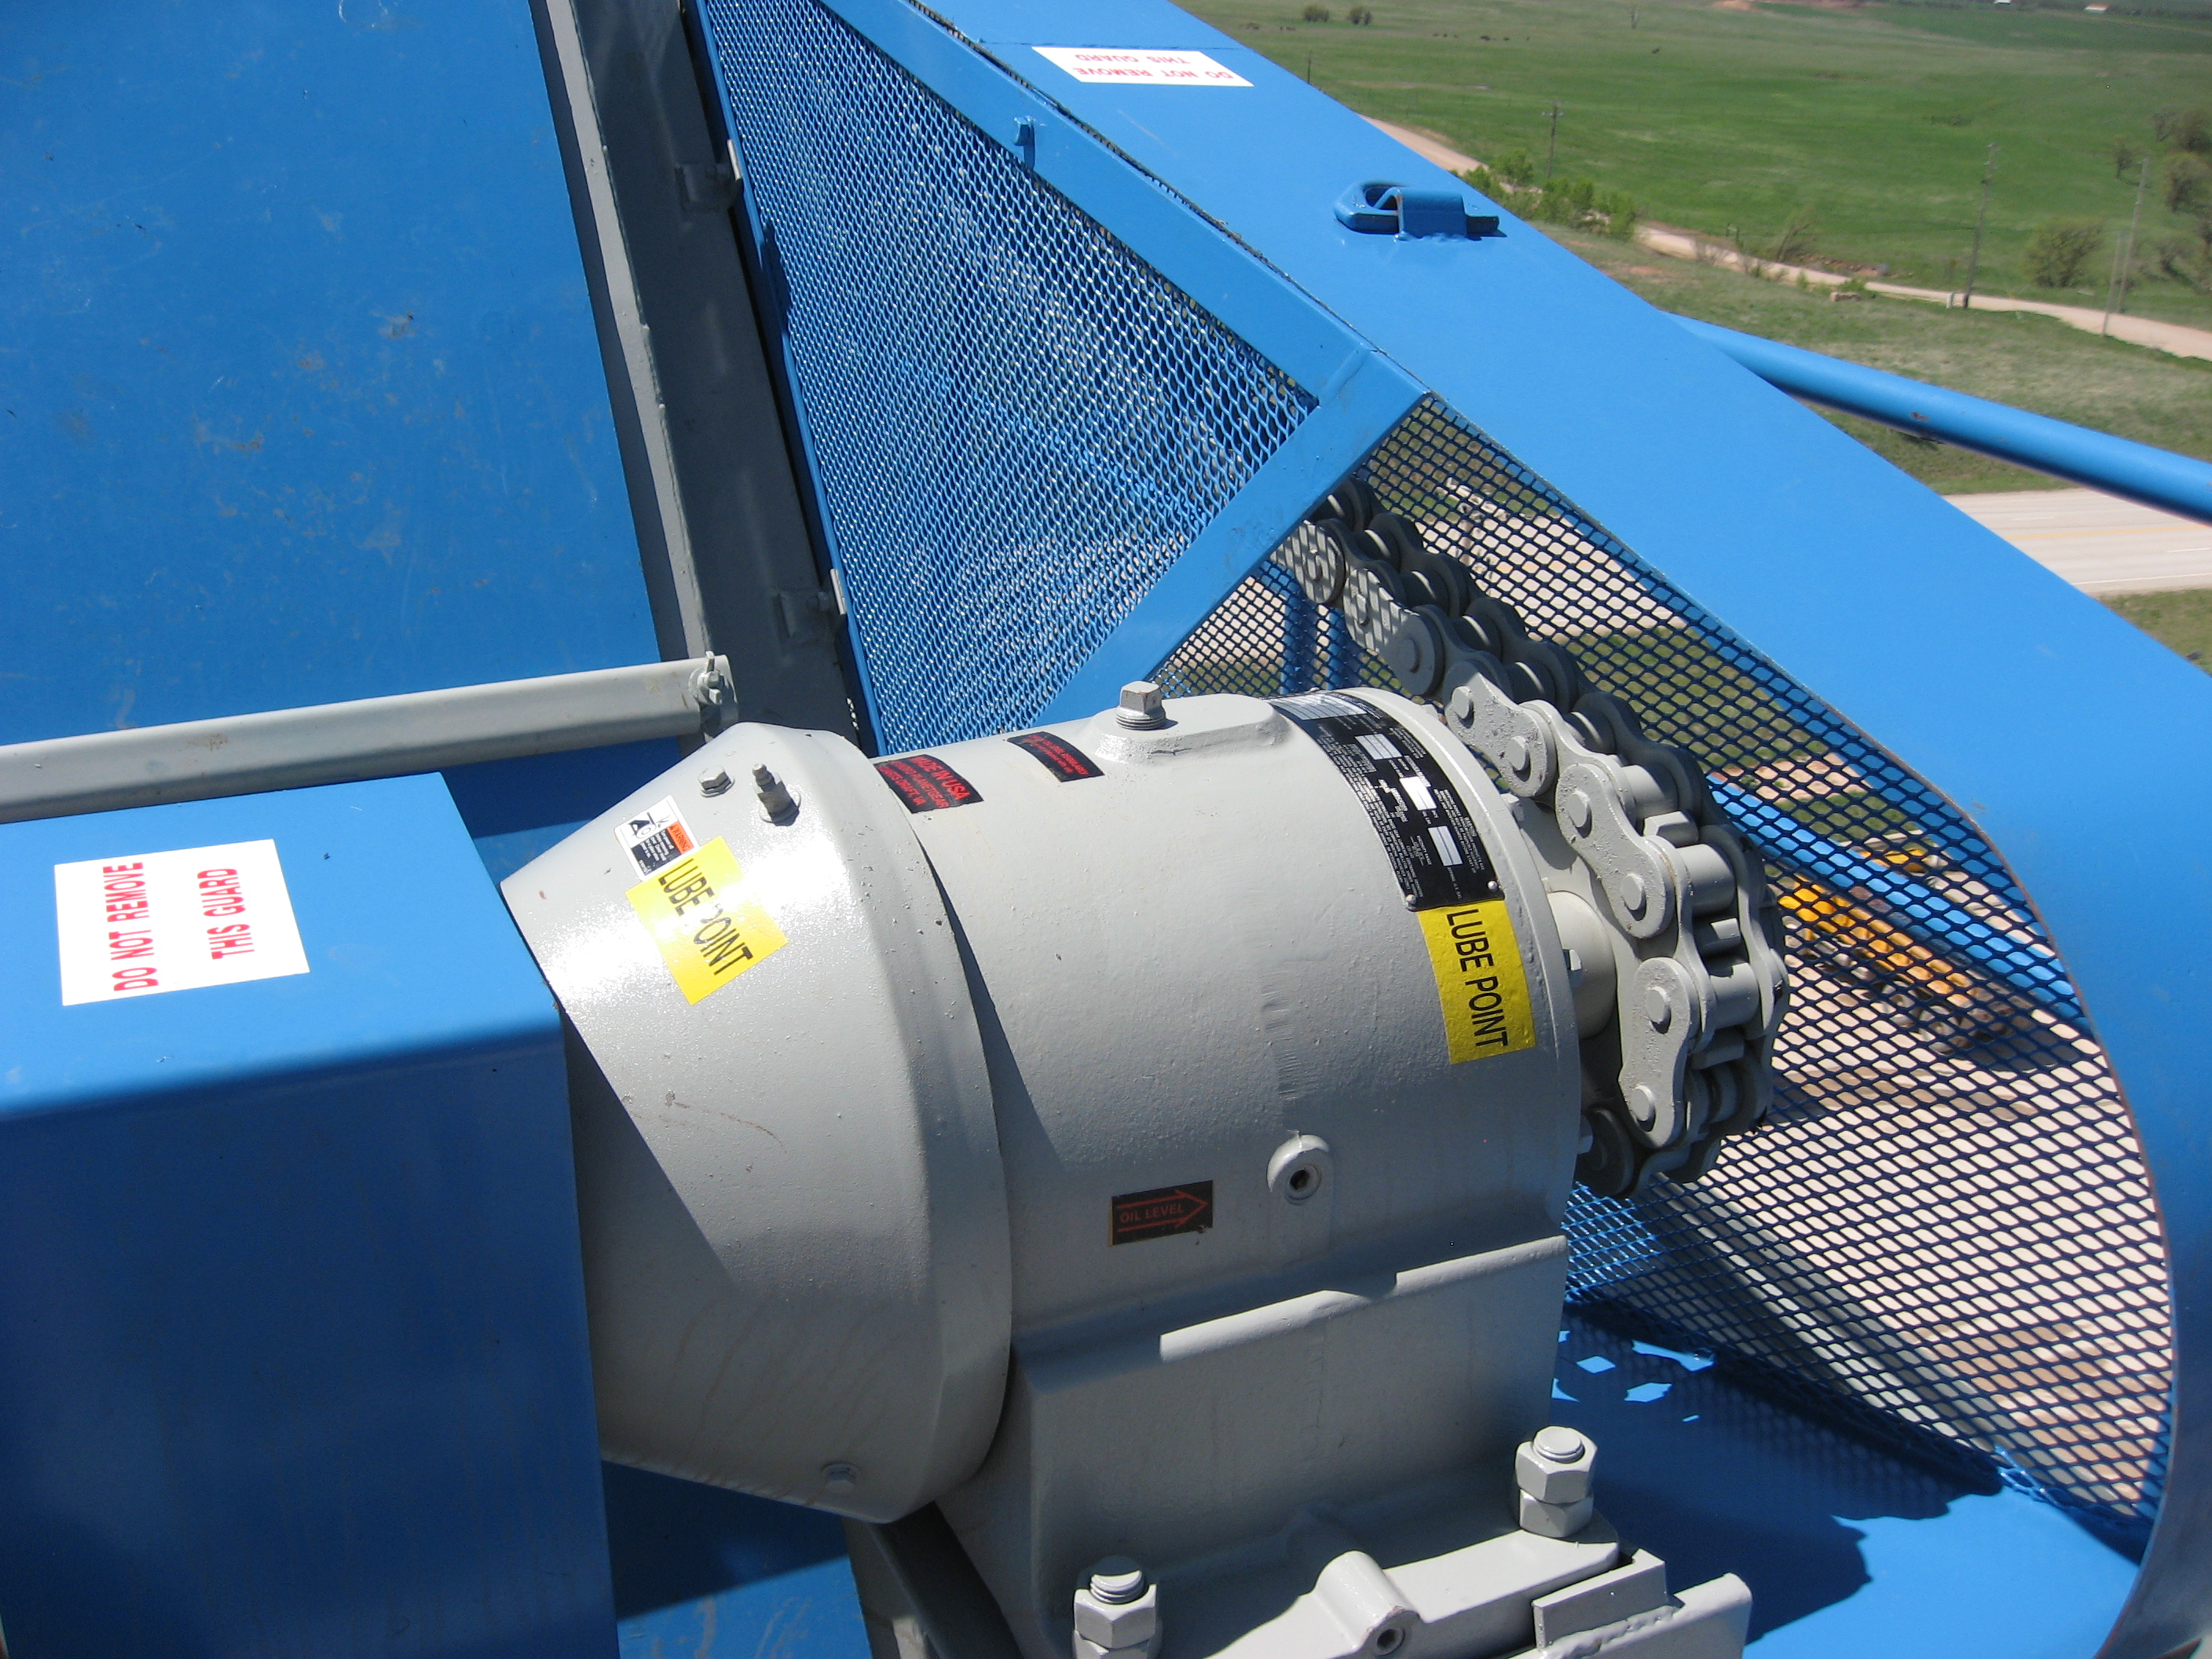 Chaindriven collecting system (Gencor)